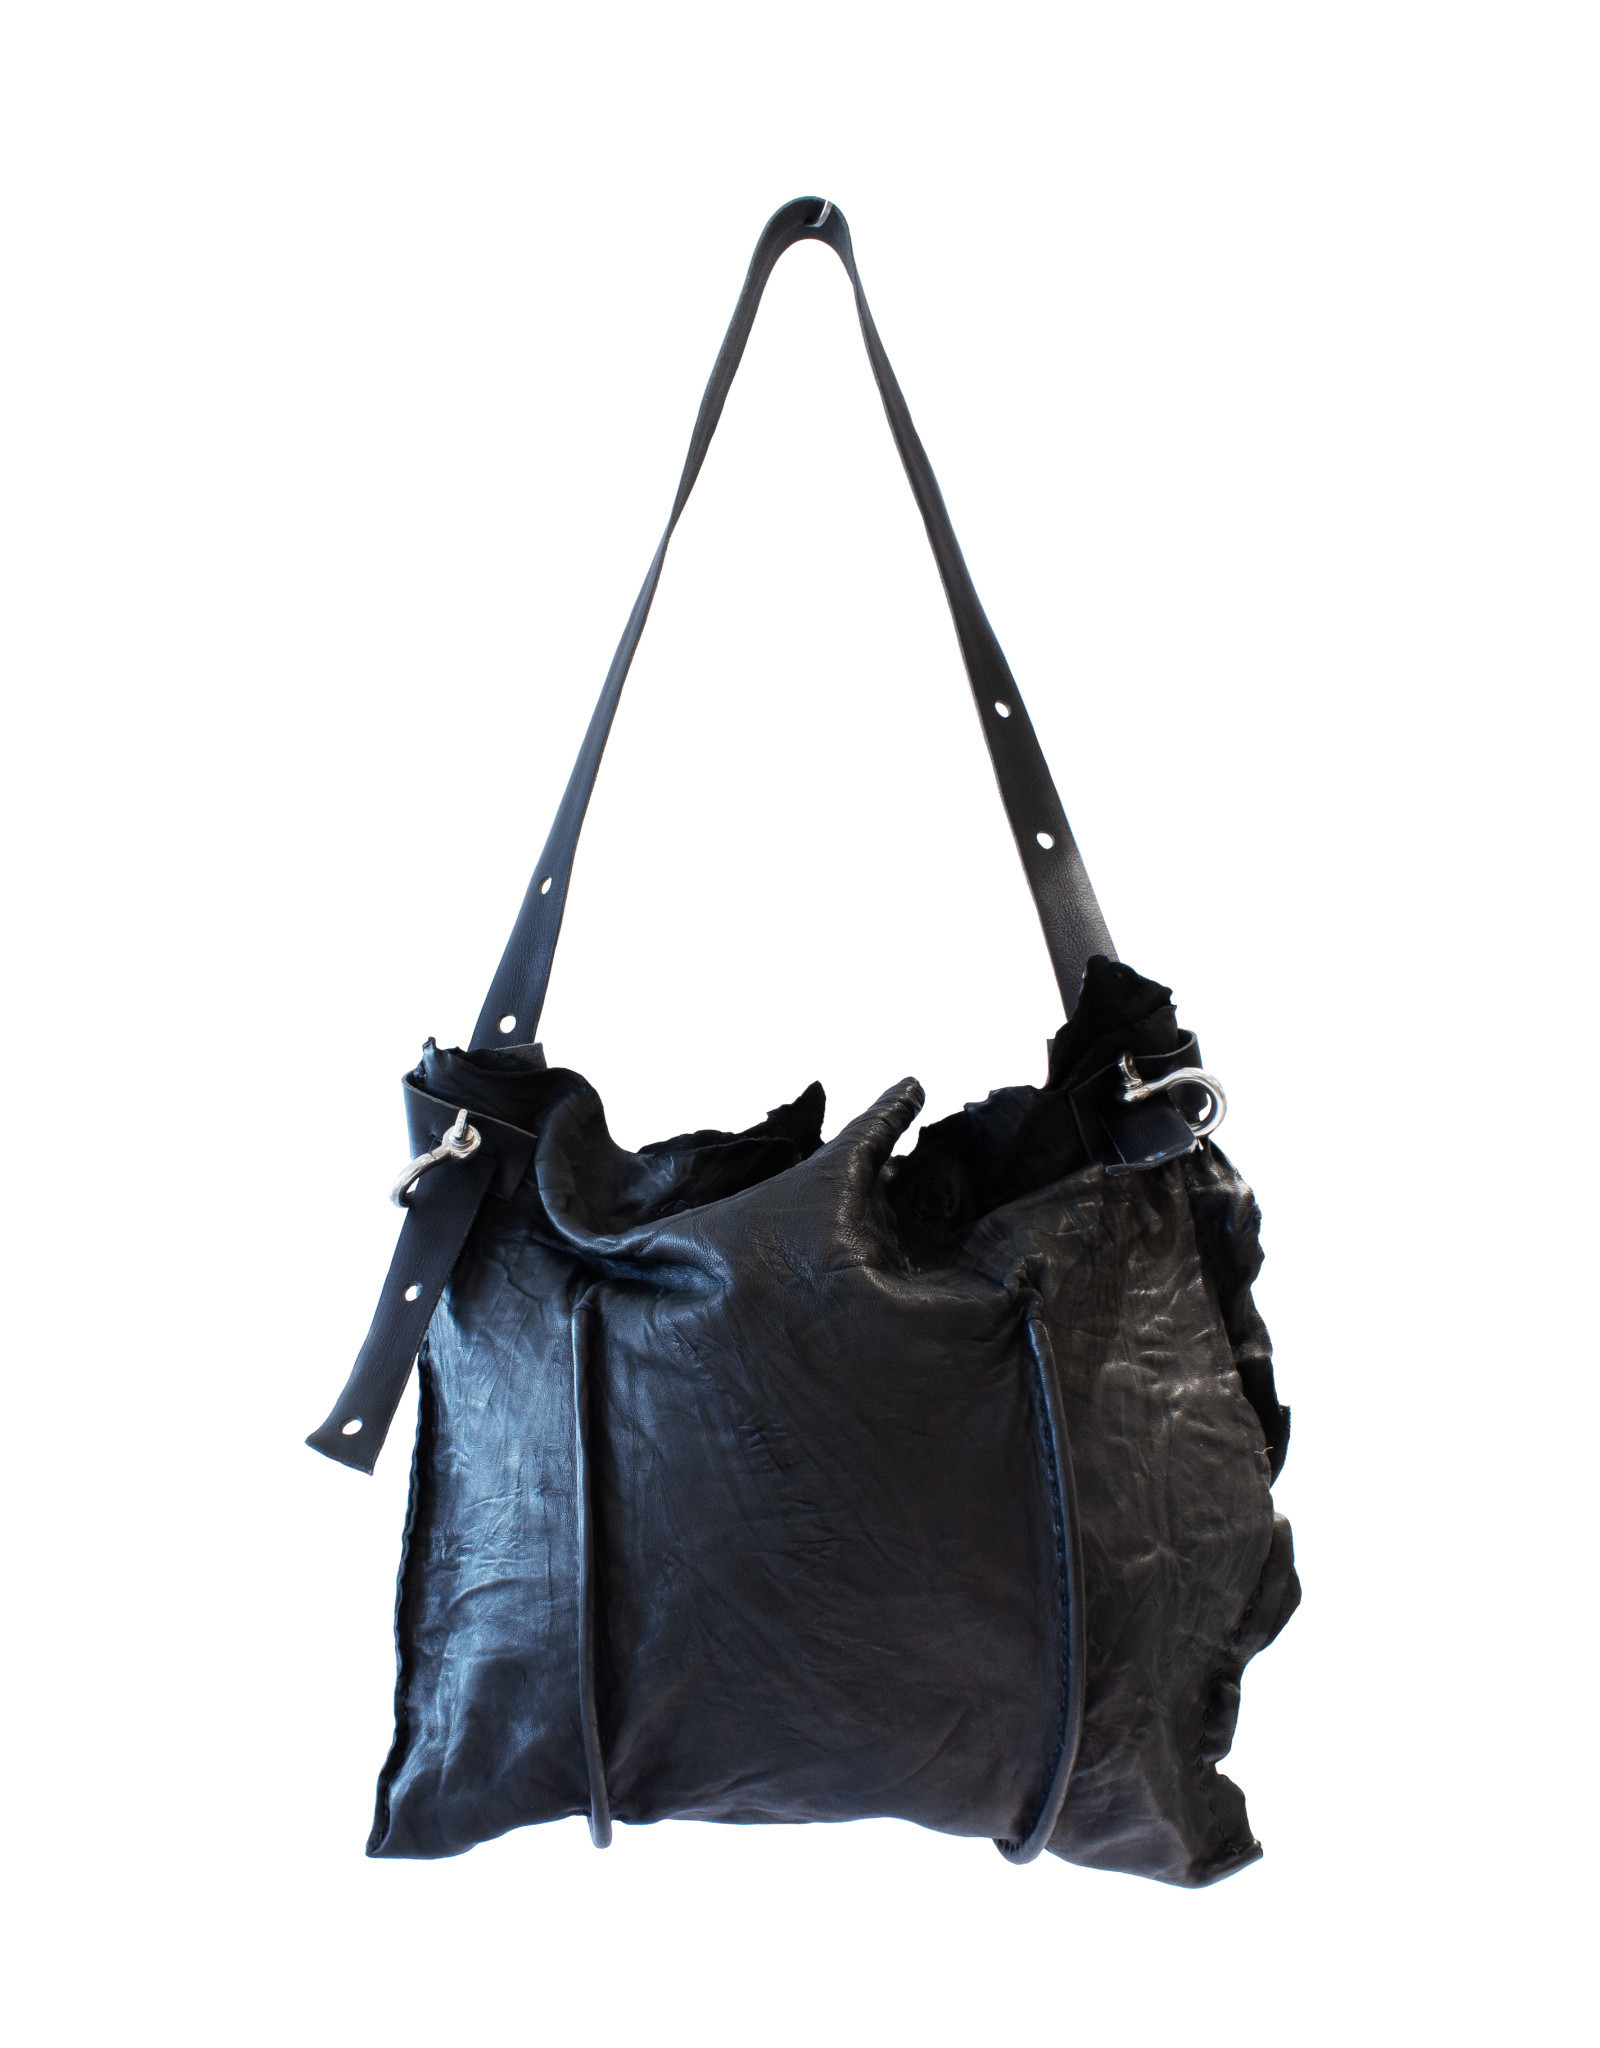 Engso Medium, Wired Bag - Black